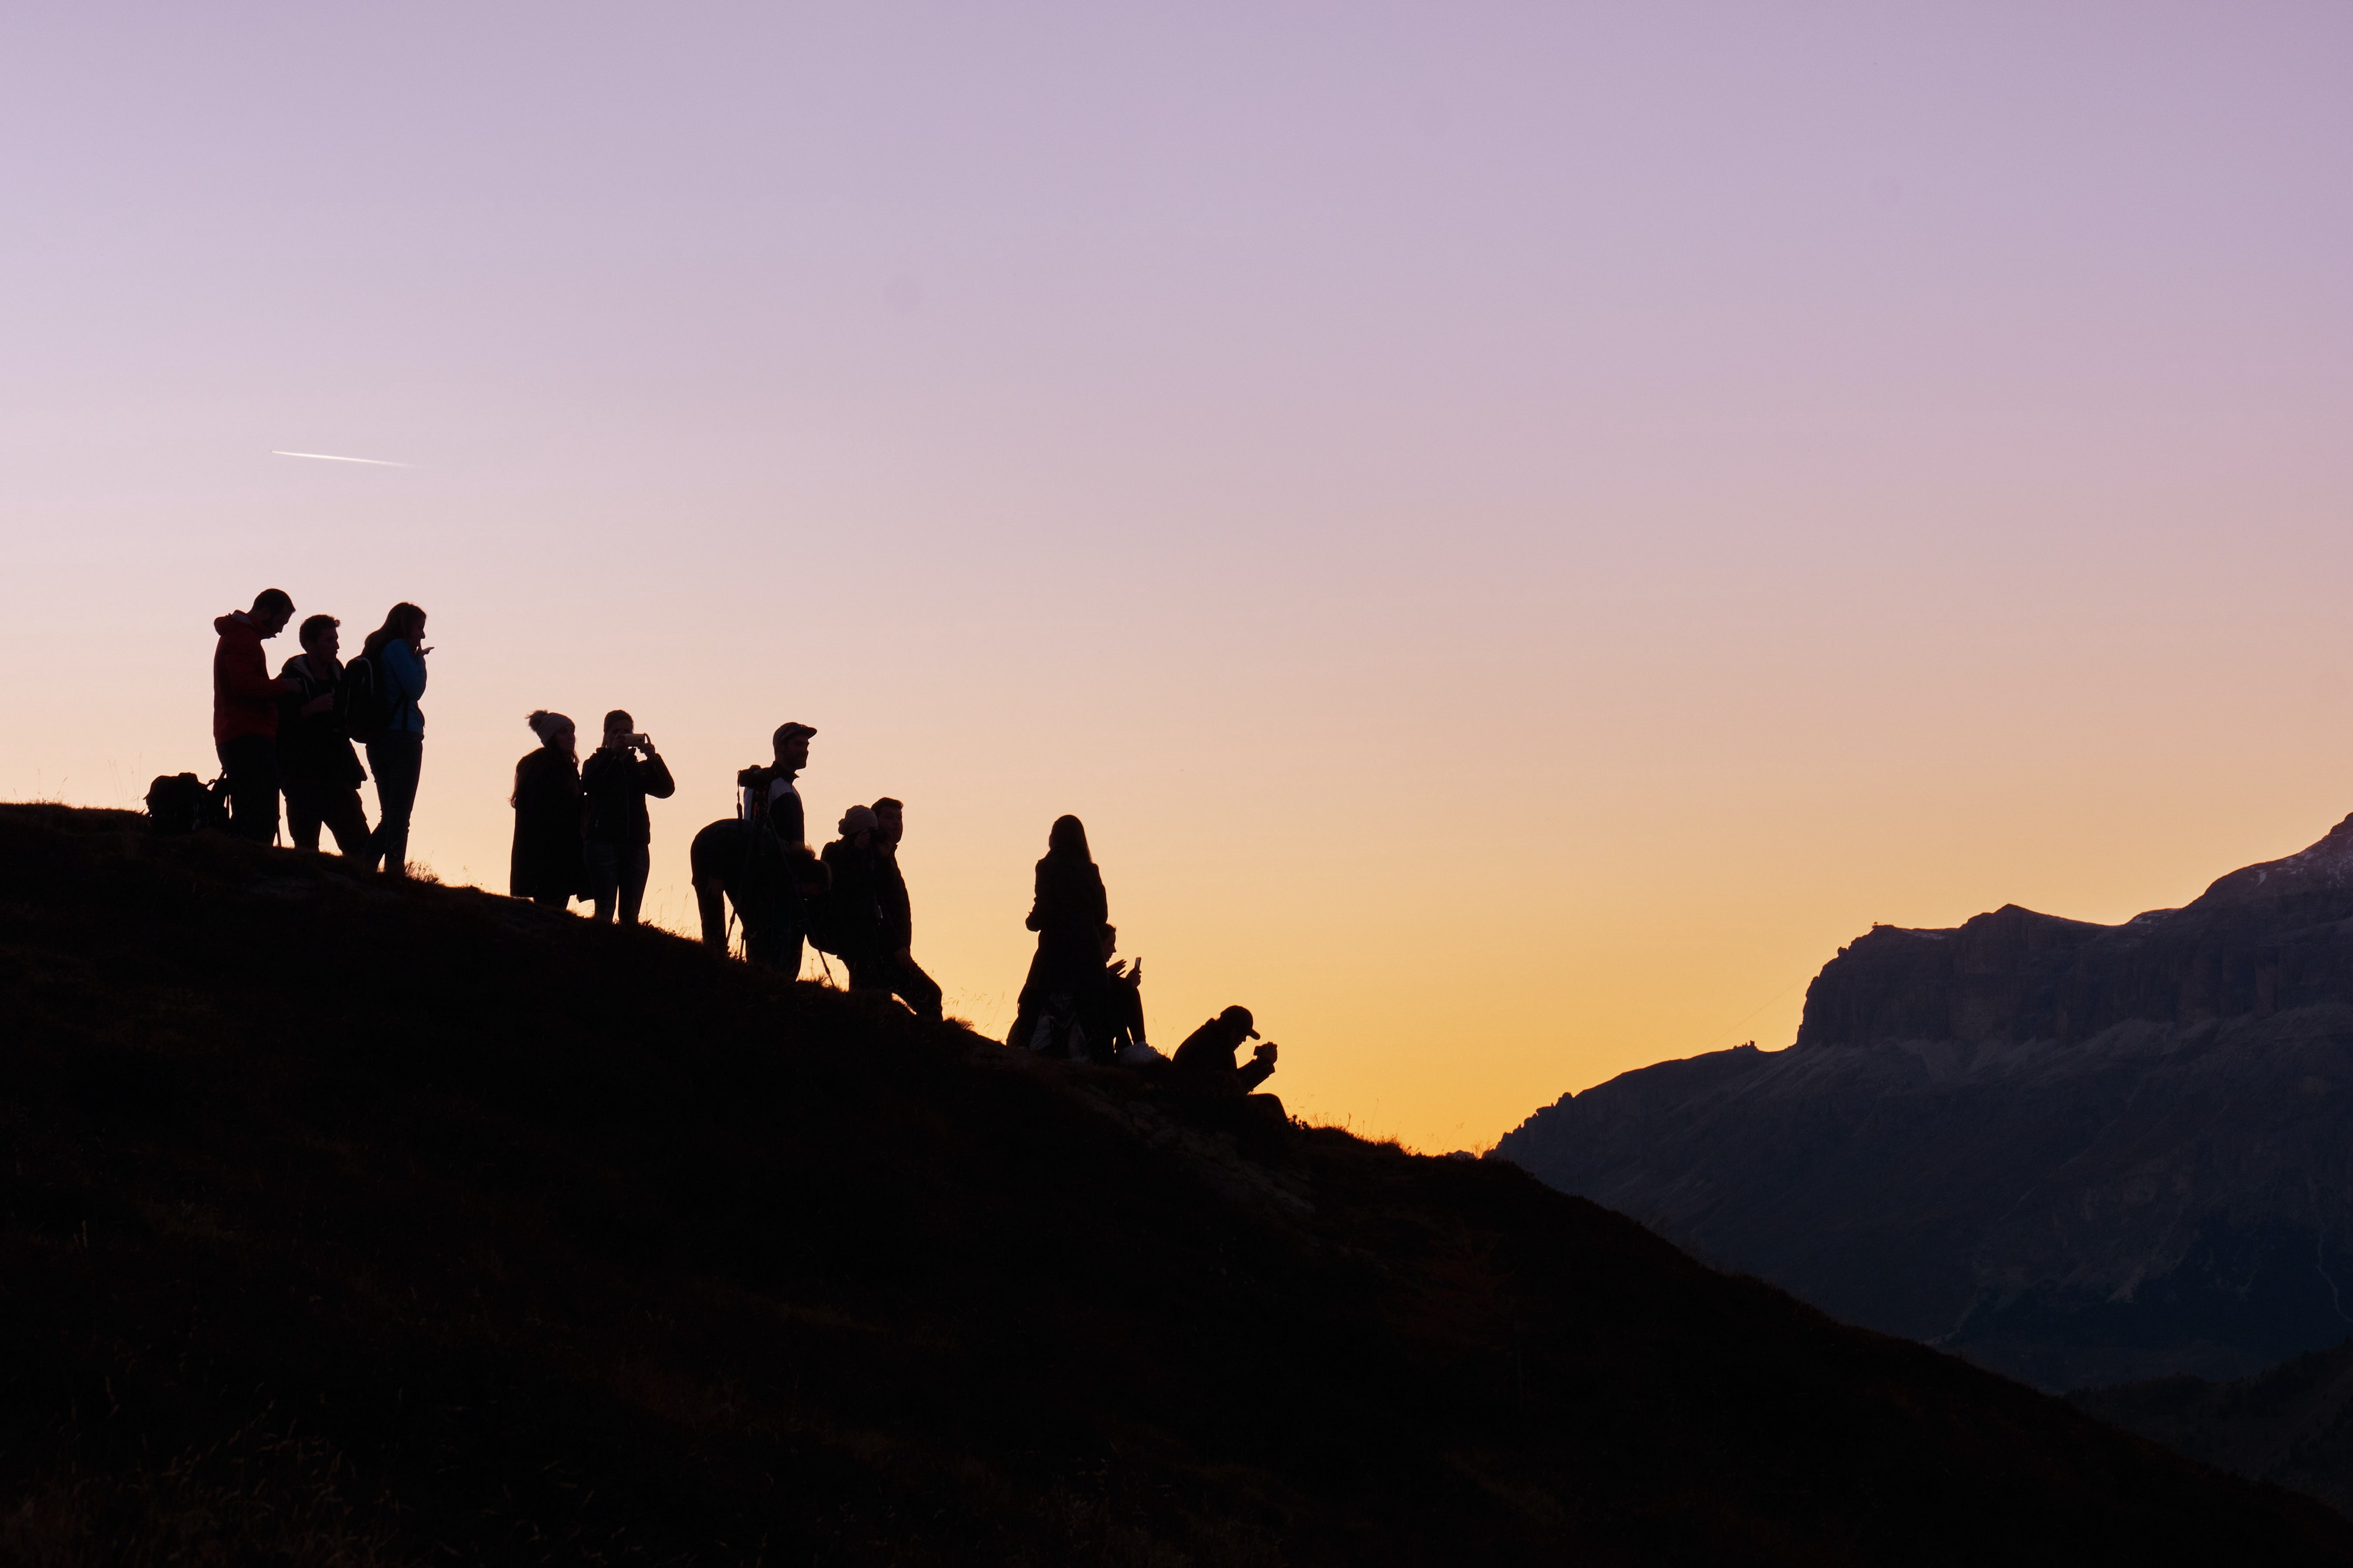 An image with people in the sunset